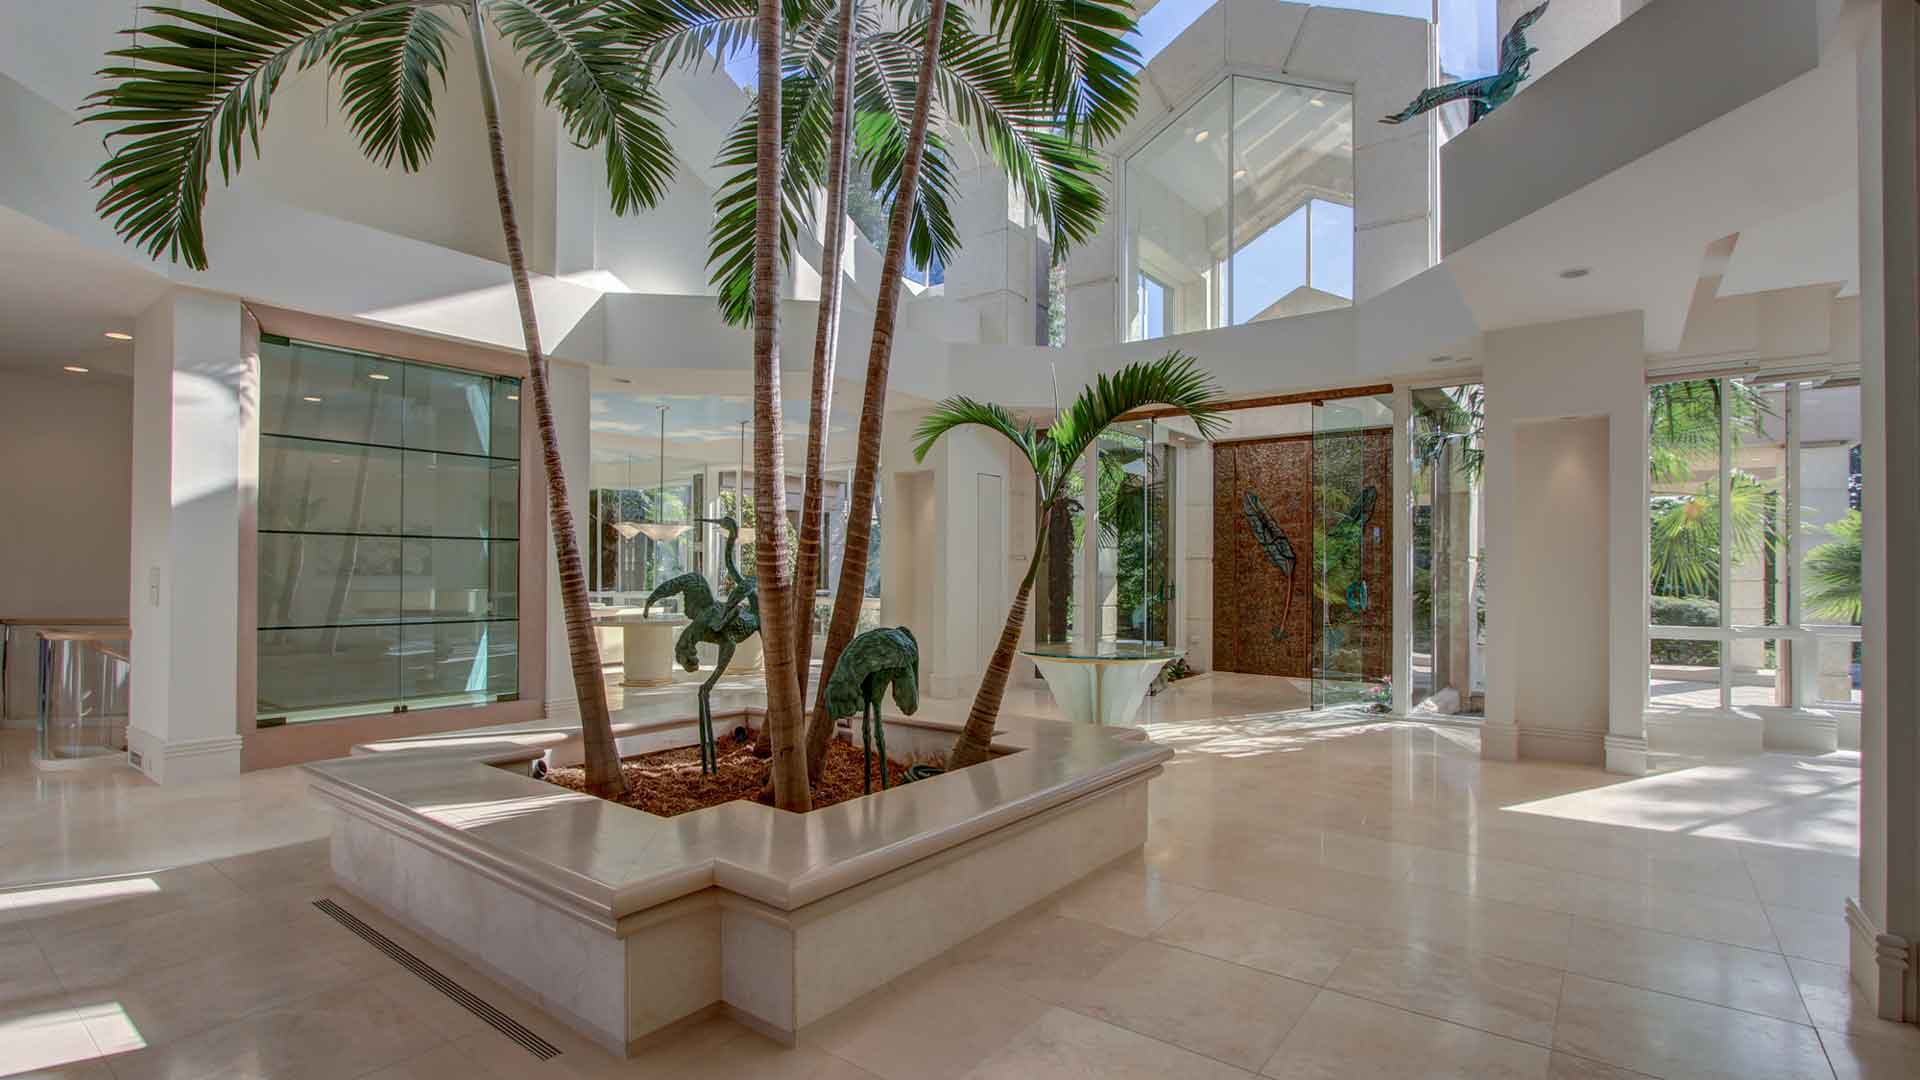 The two-story atrium houses an exquisite palm court with marble floors and a glass ceiling.